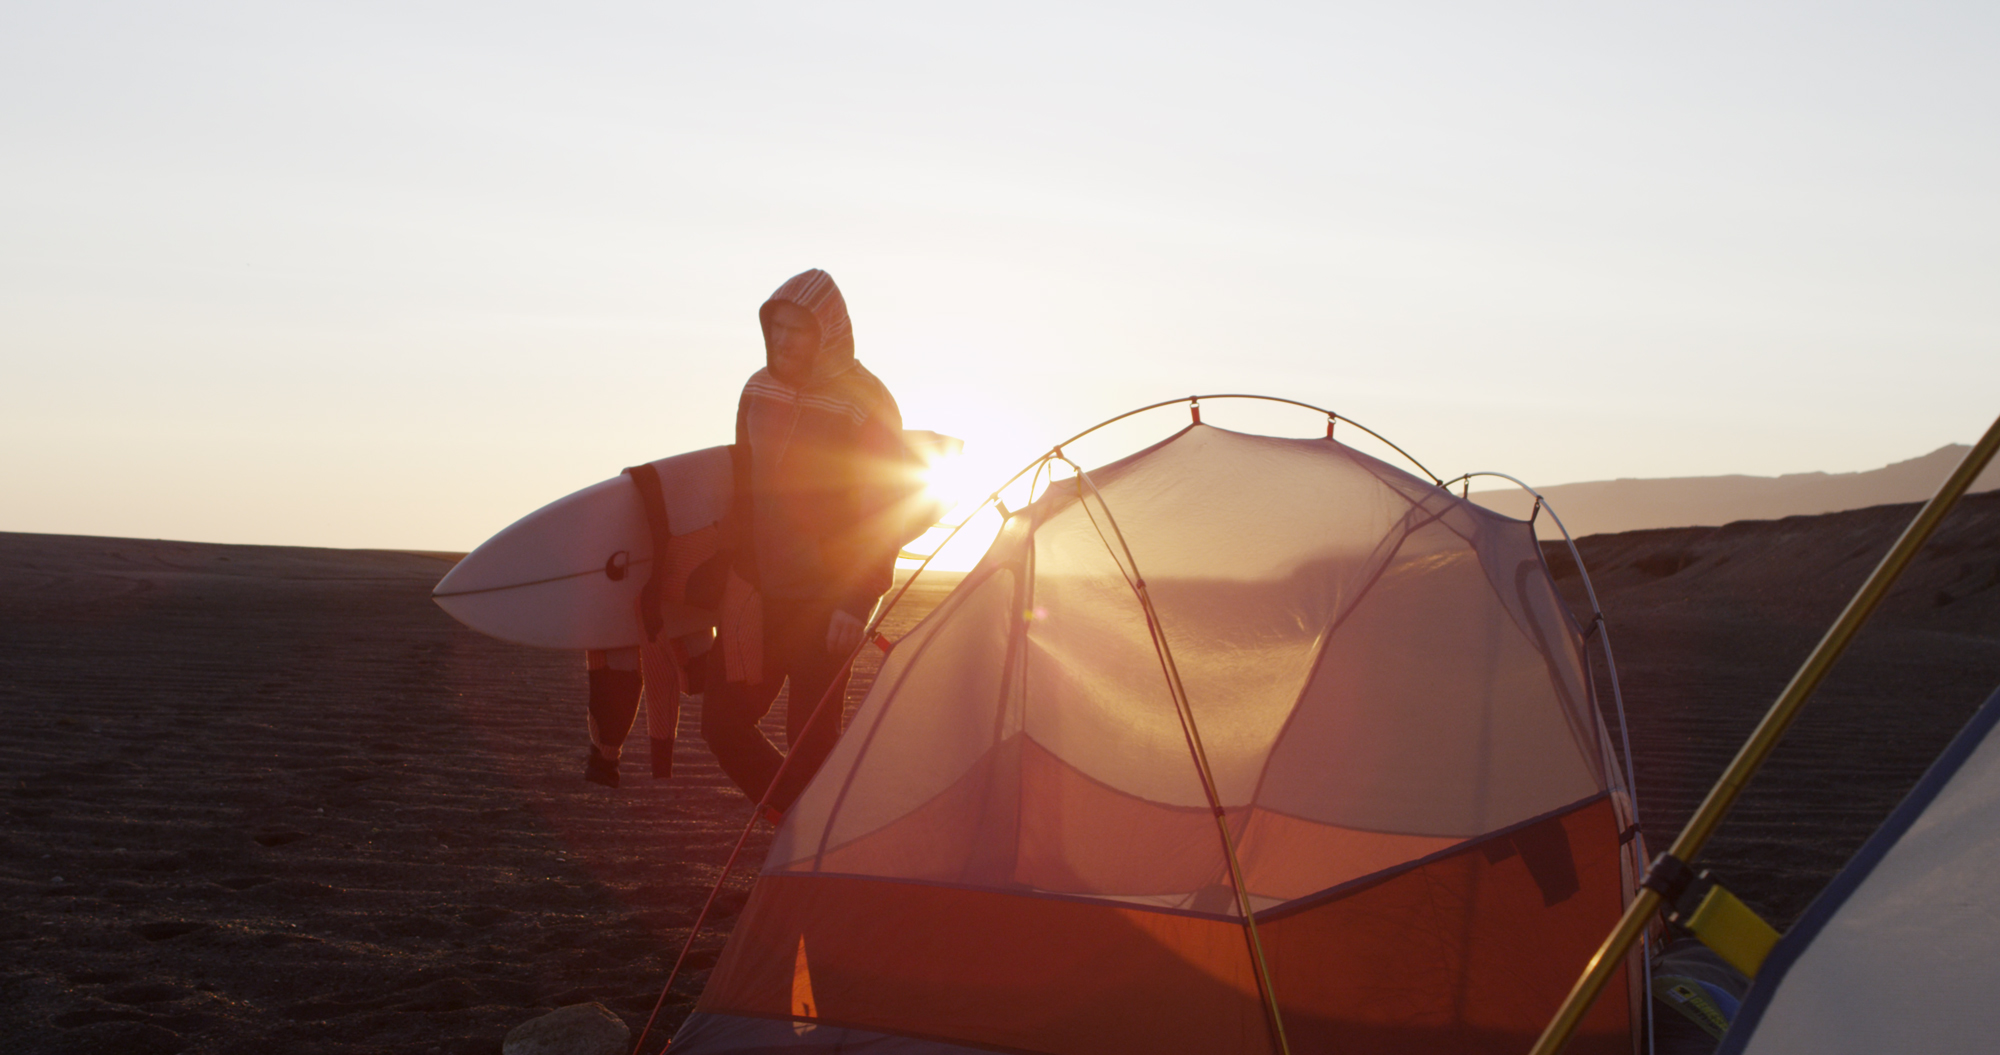 The Mountainsmith Mountain Dome tent in the film YOW: Icelandic for yes